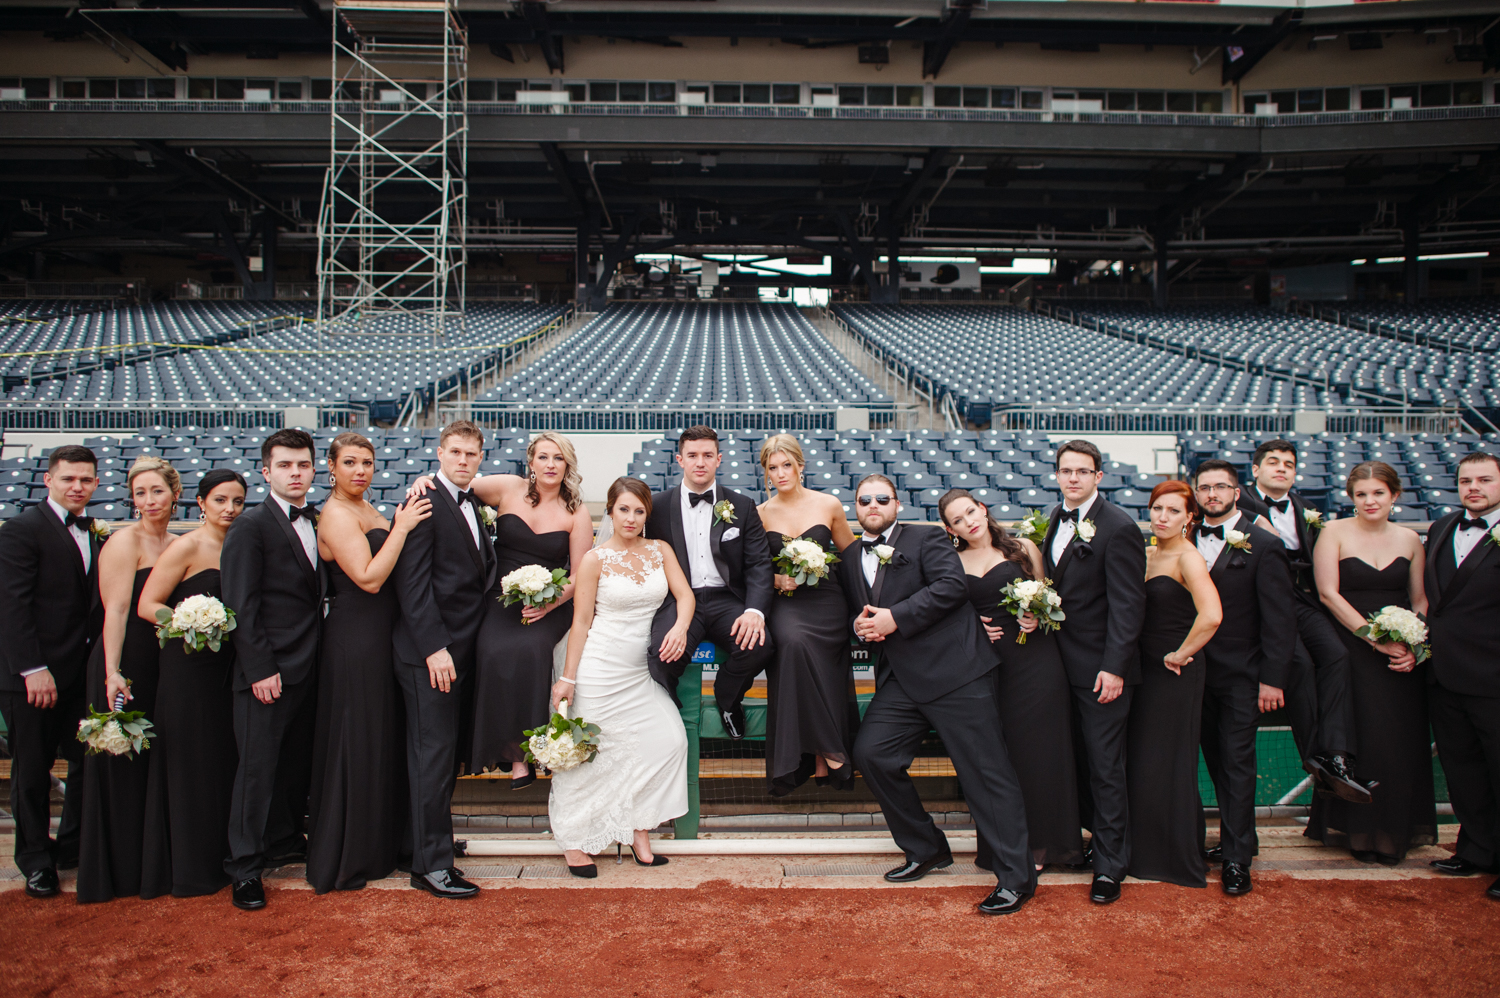 pnc park weddings photographer pittsburgh